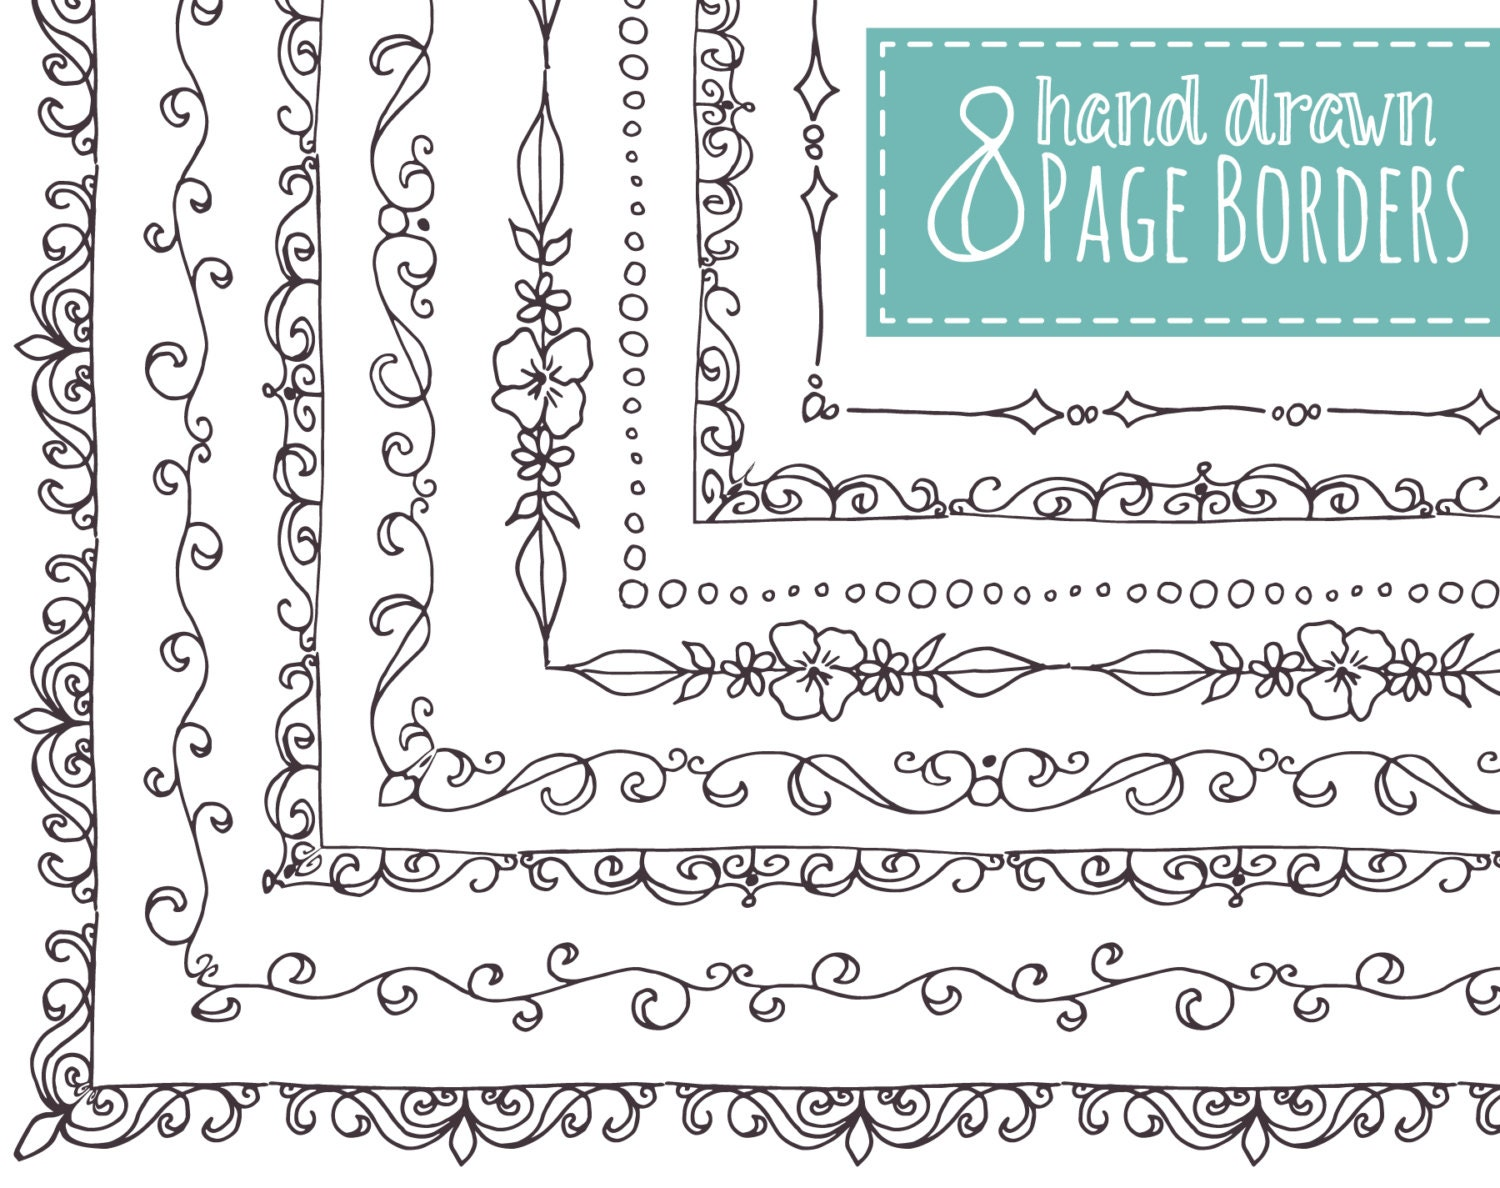 CLIP ART: 8 Page Borders // Hand Drawn Frames // Doodle